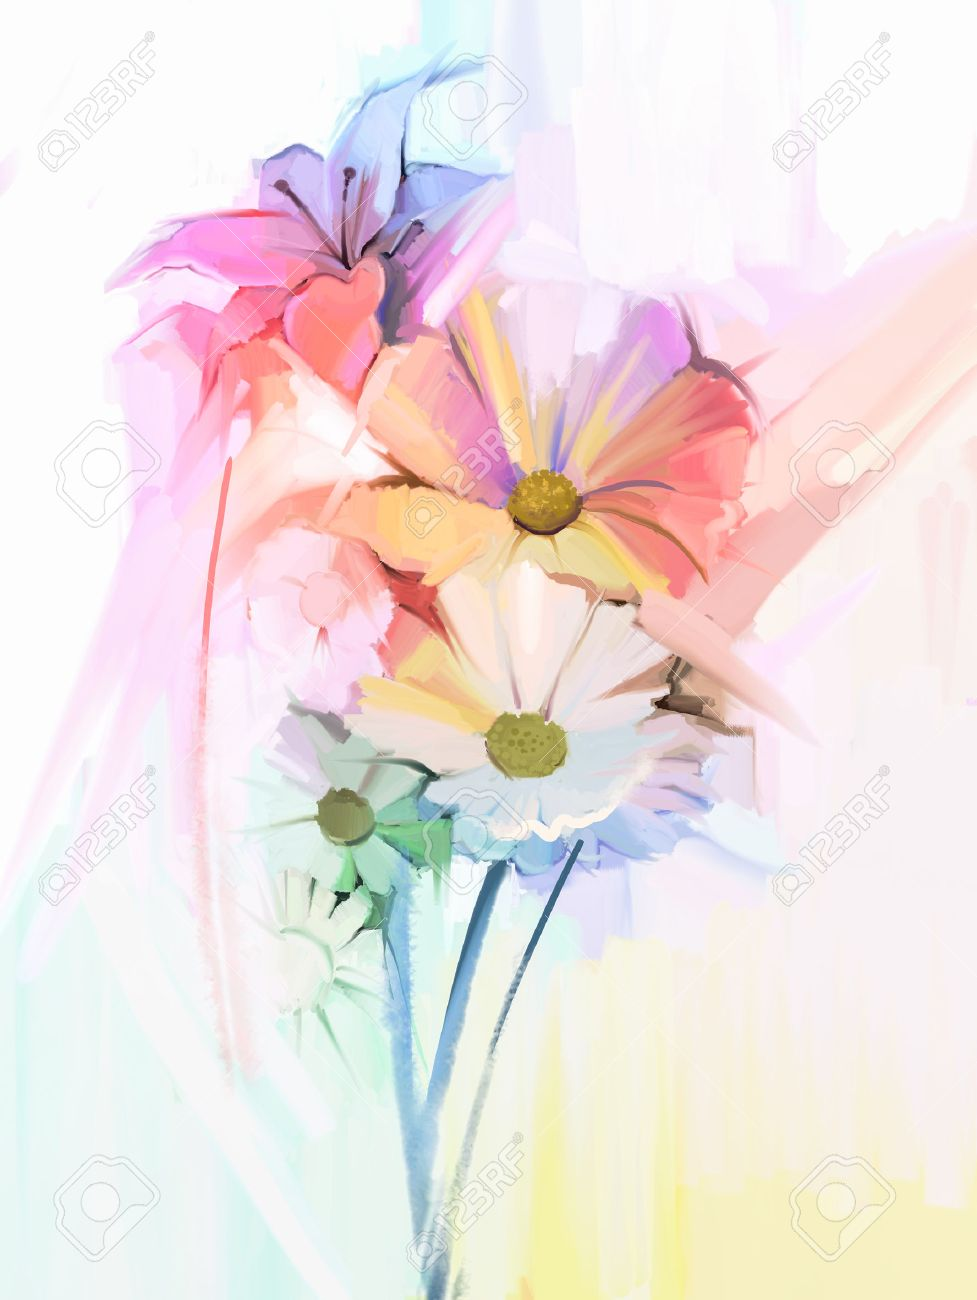 Painting Color still life of white color flowers with soft pink and purple